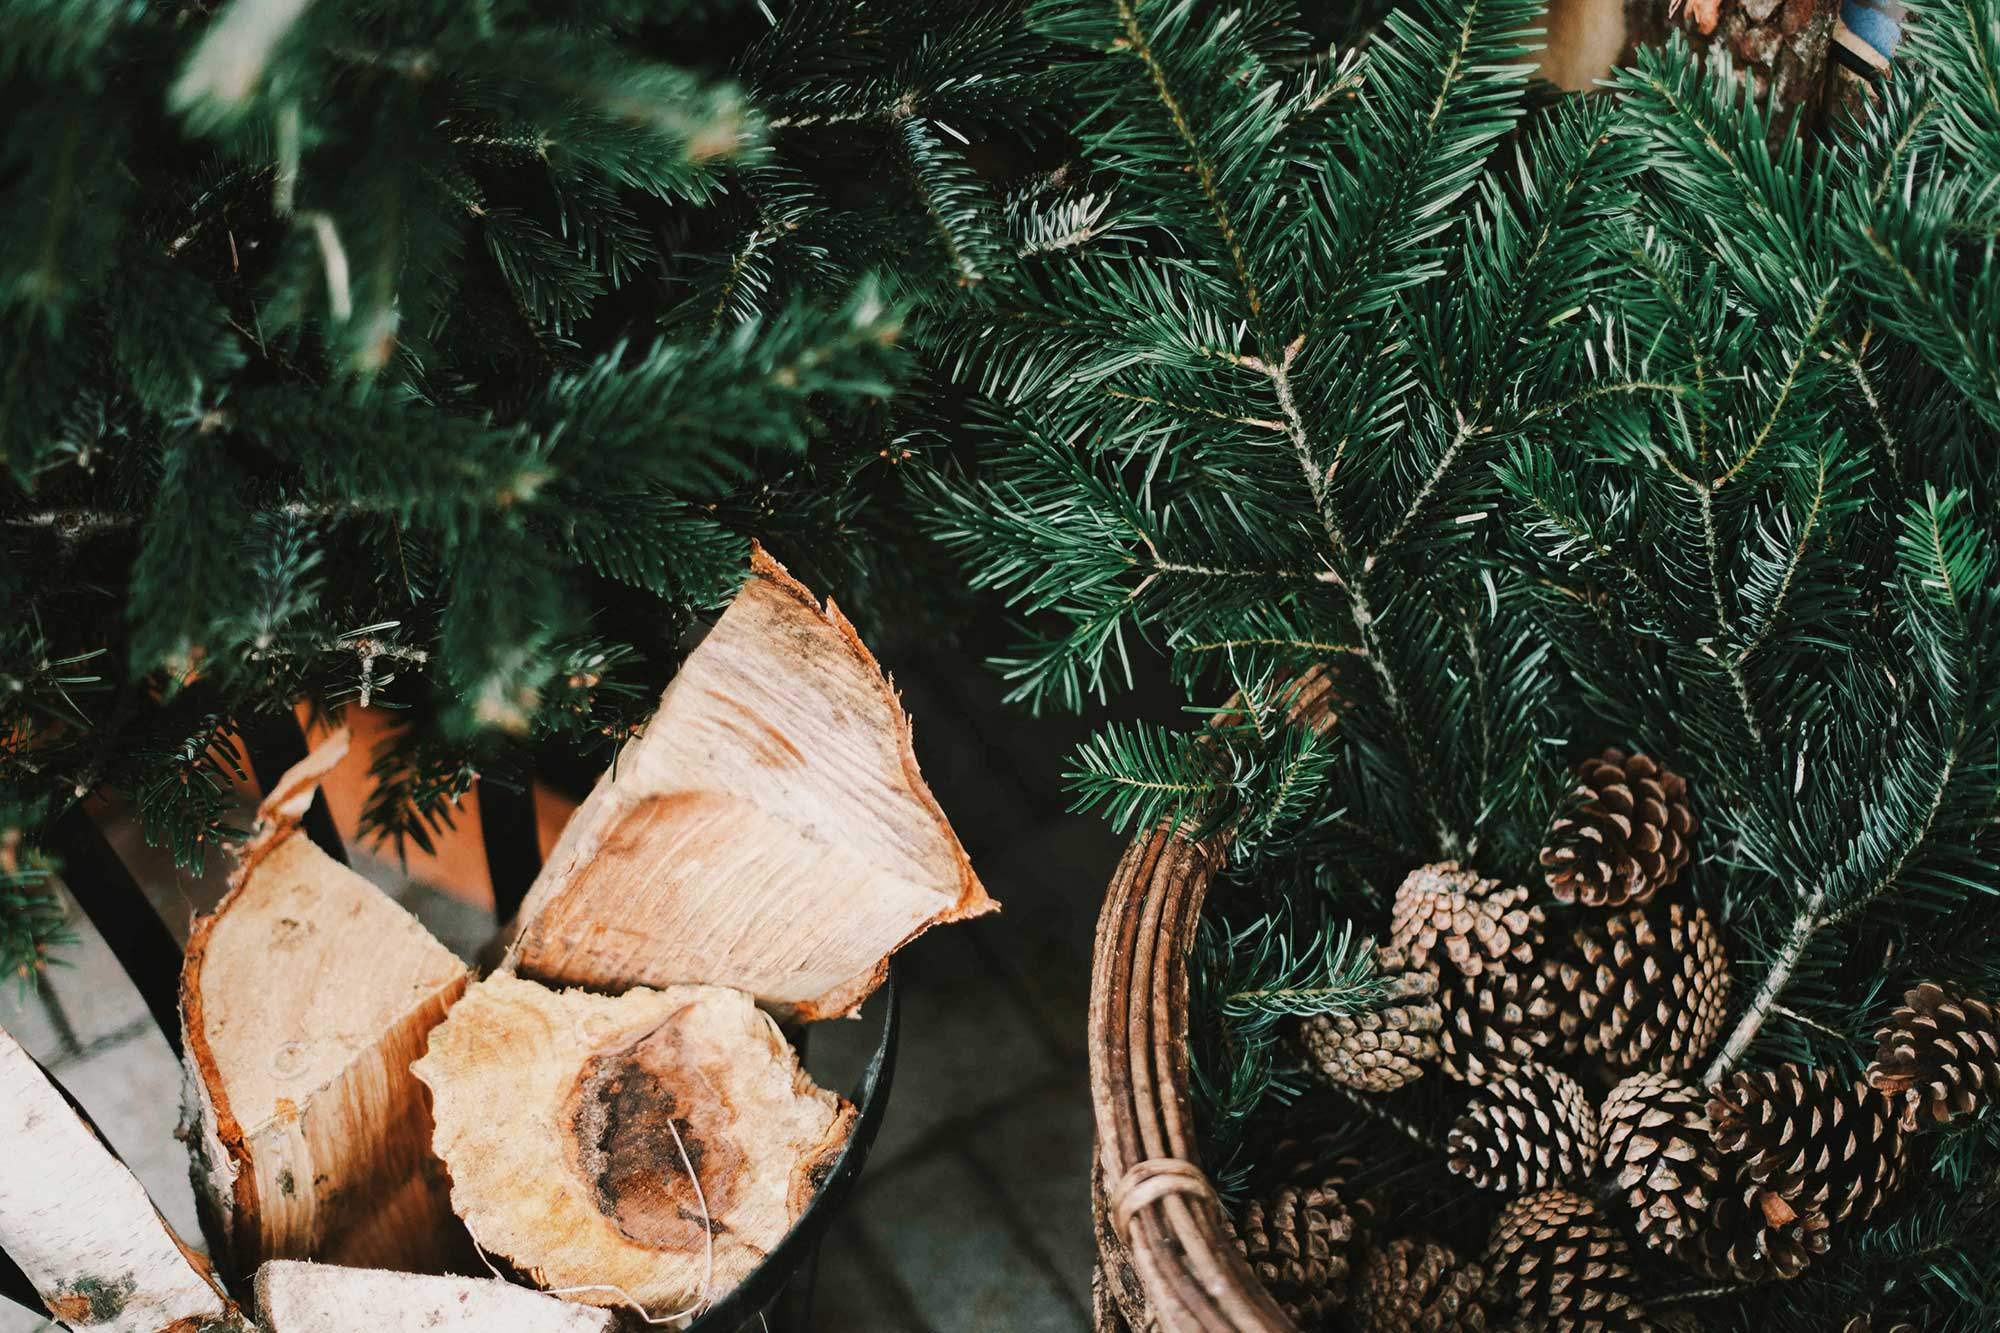 cut wood, acorns and fir branches in baskets